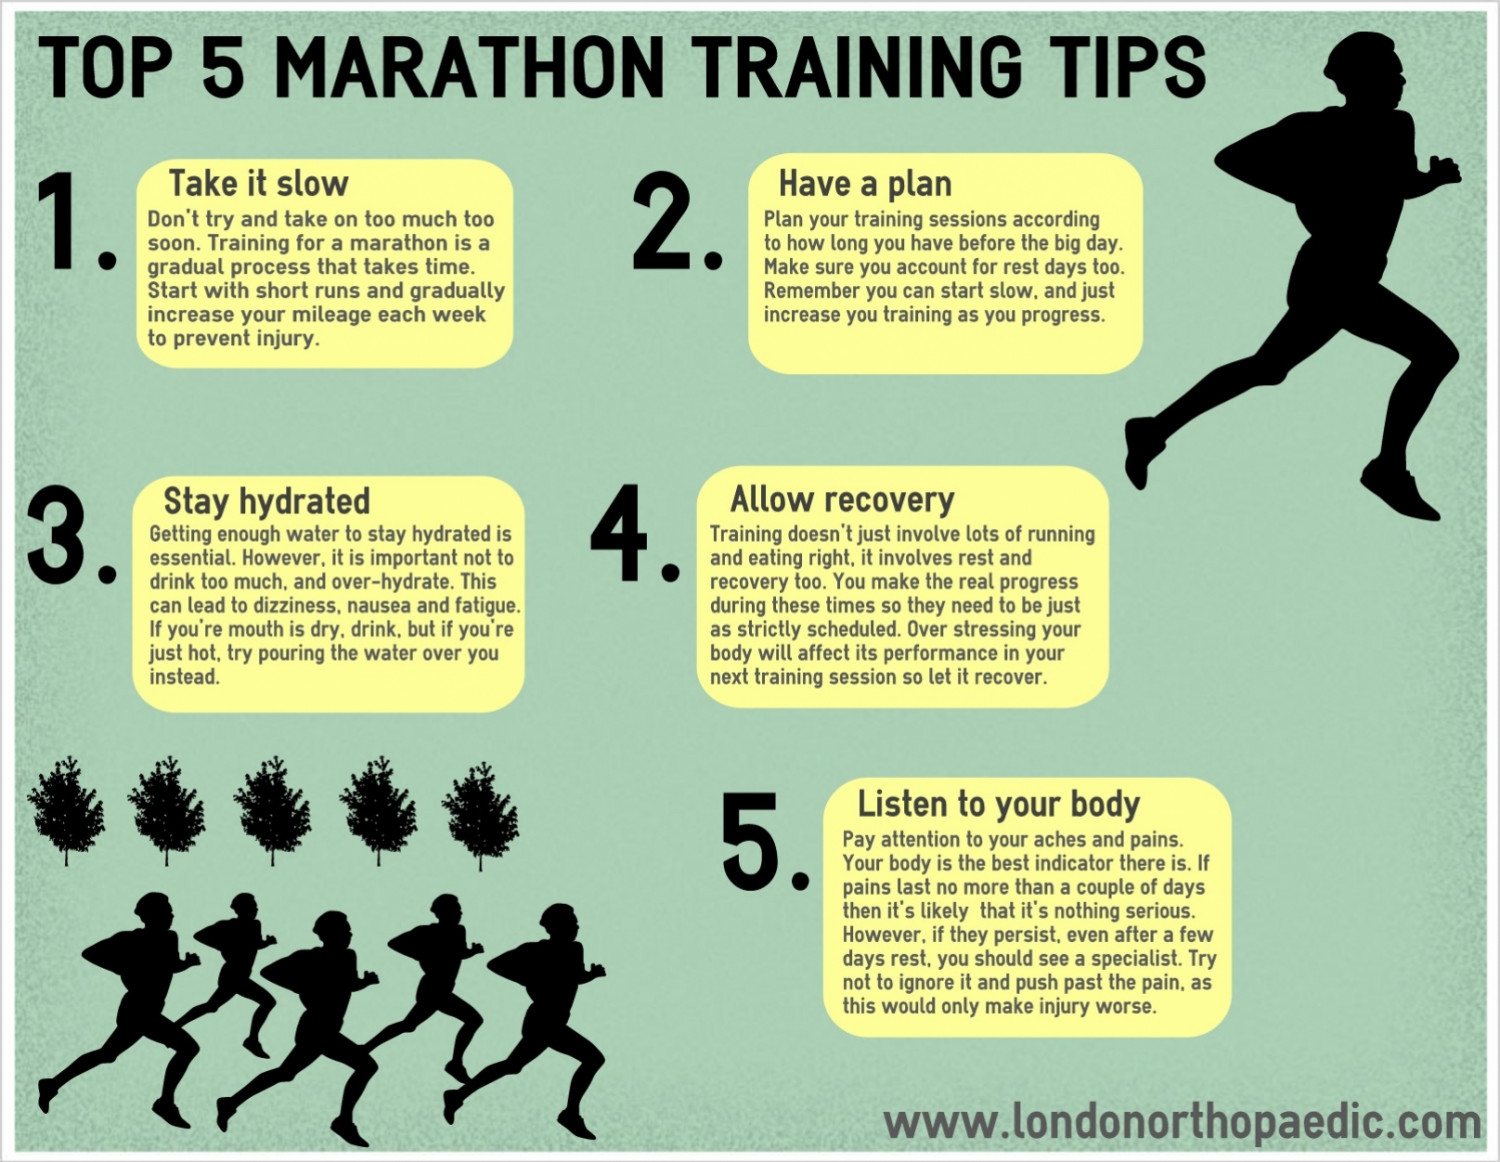 Top 5 Marathon Training Tips